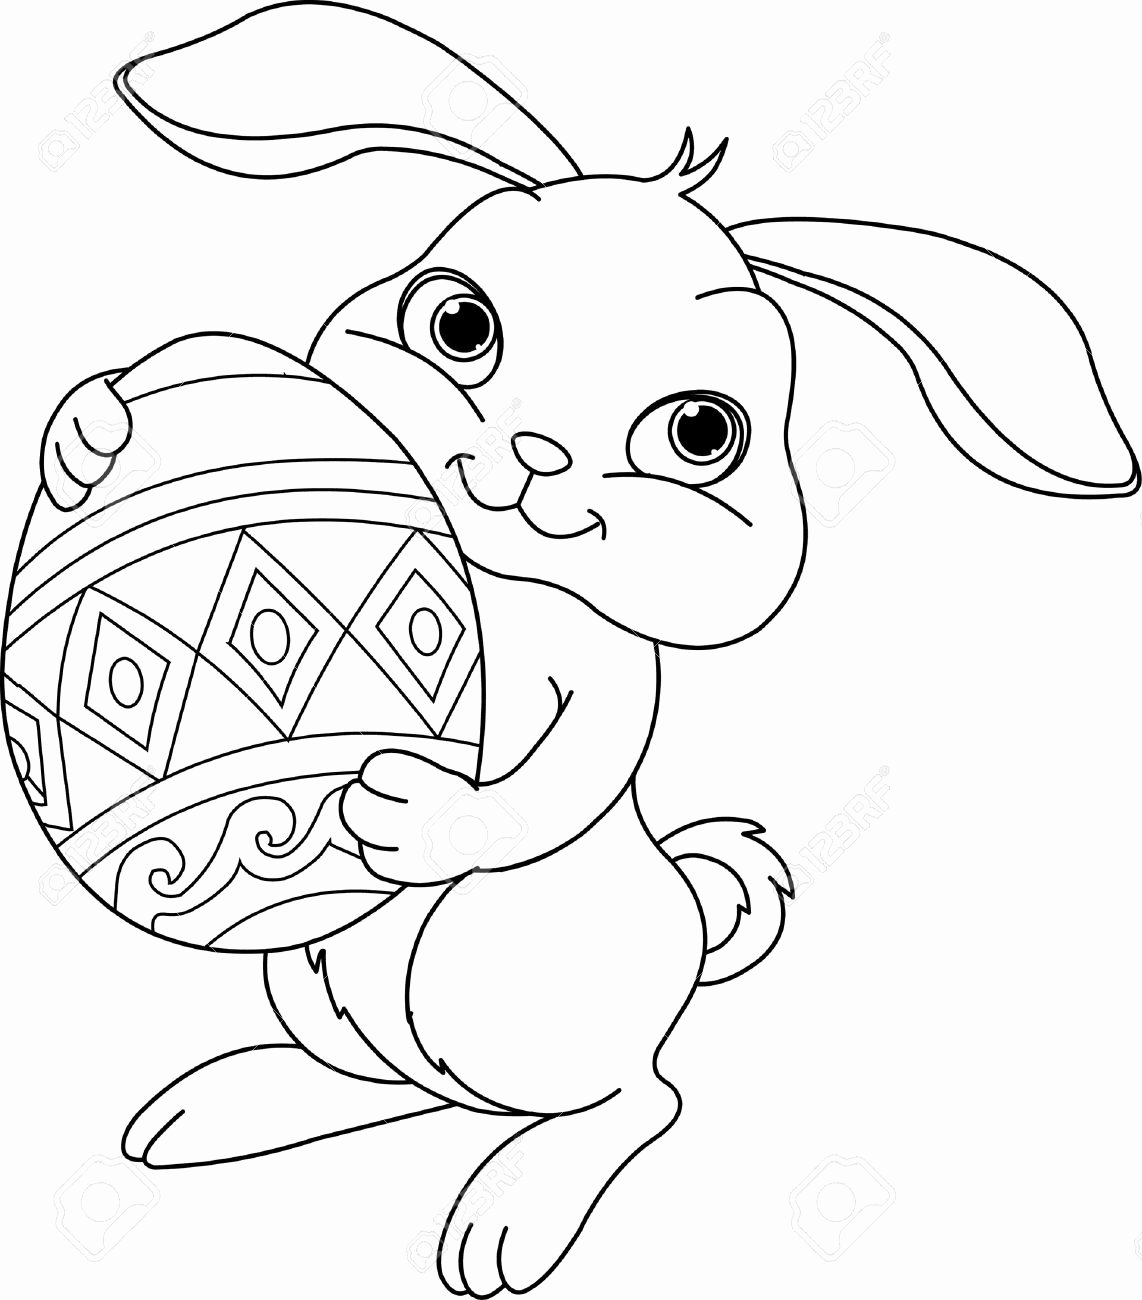 1142x1300 Easter Bunny Coloring Pages Printable Awesome Easter Printable